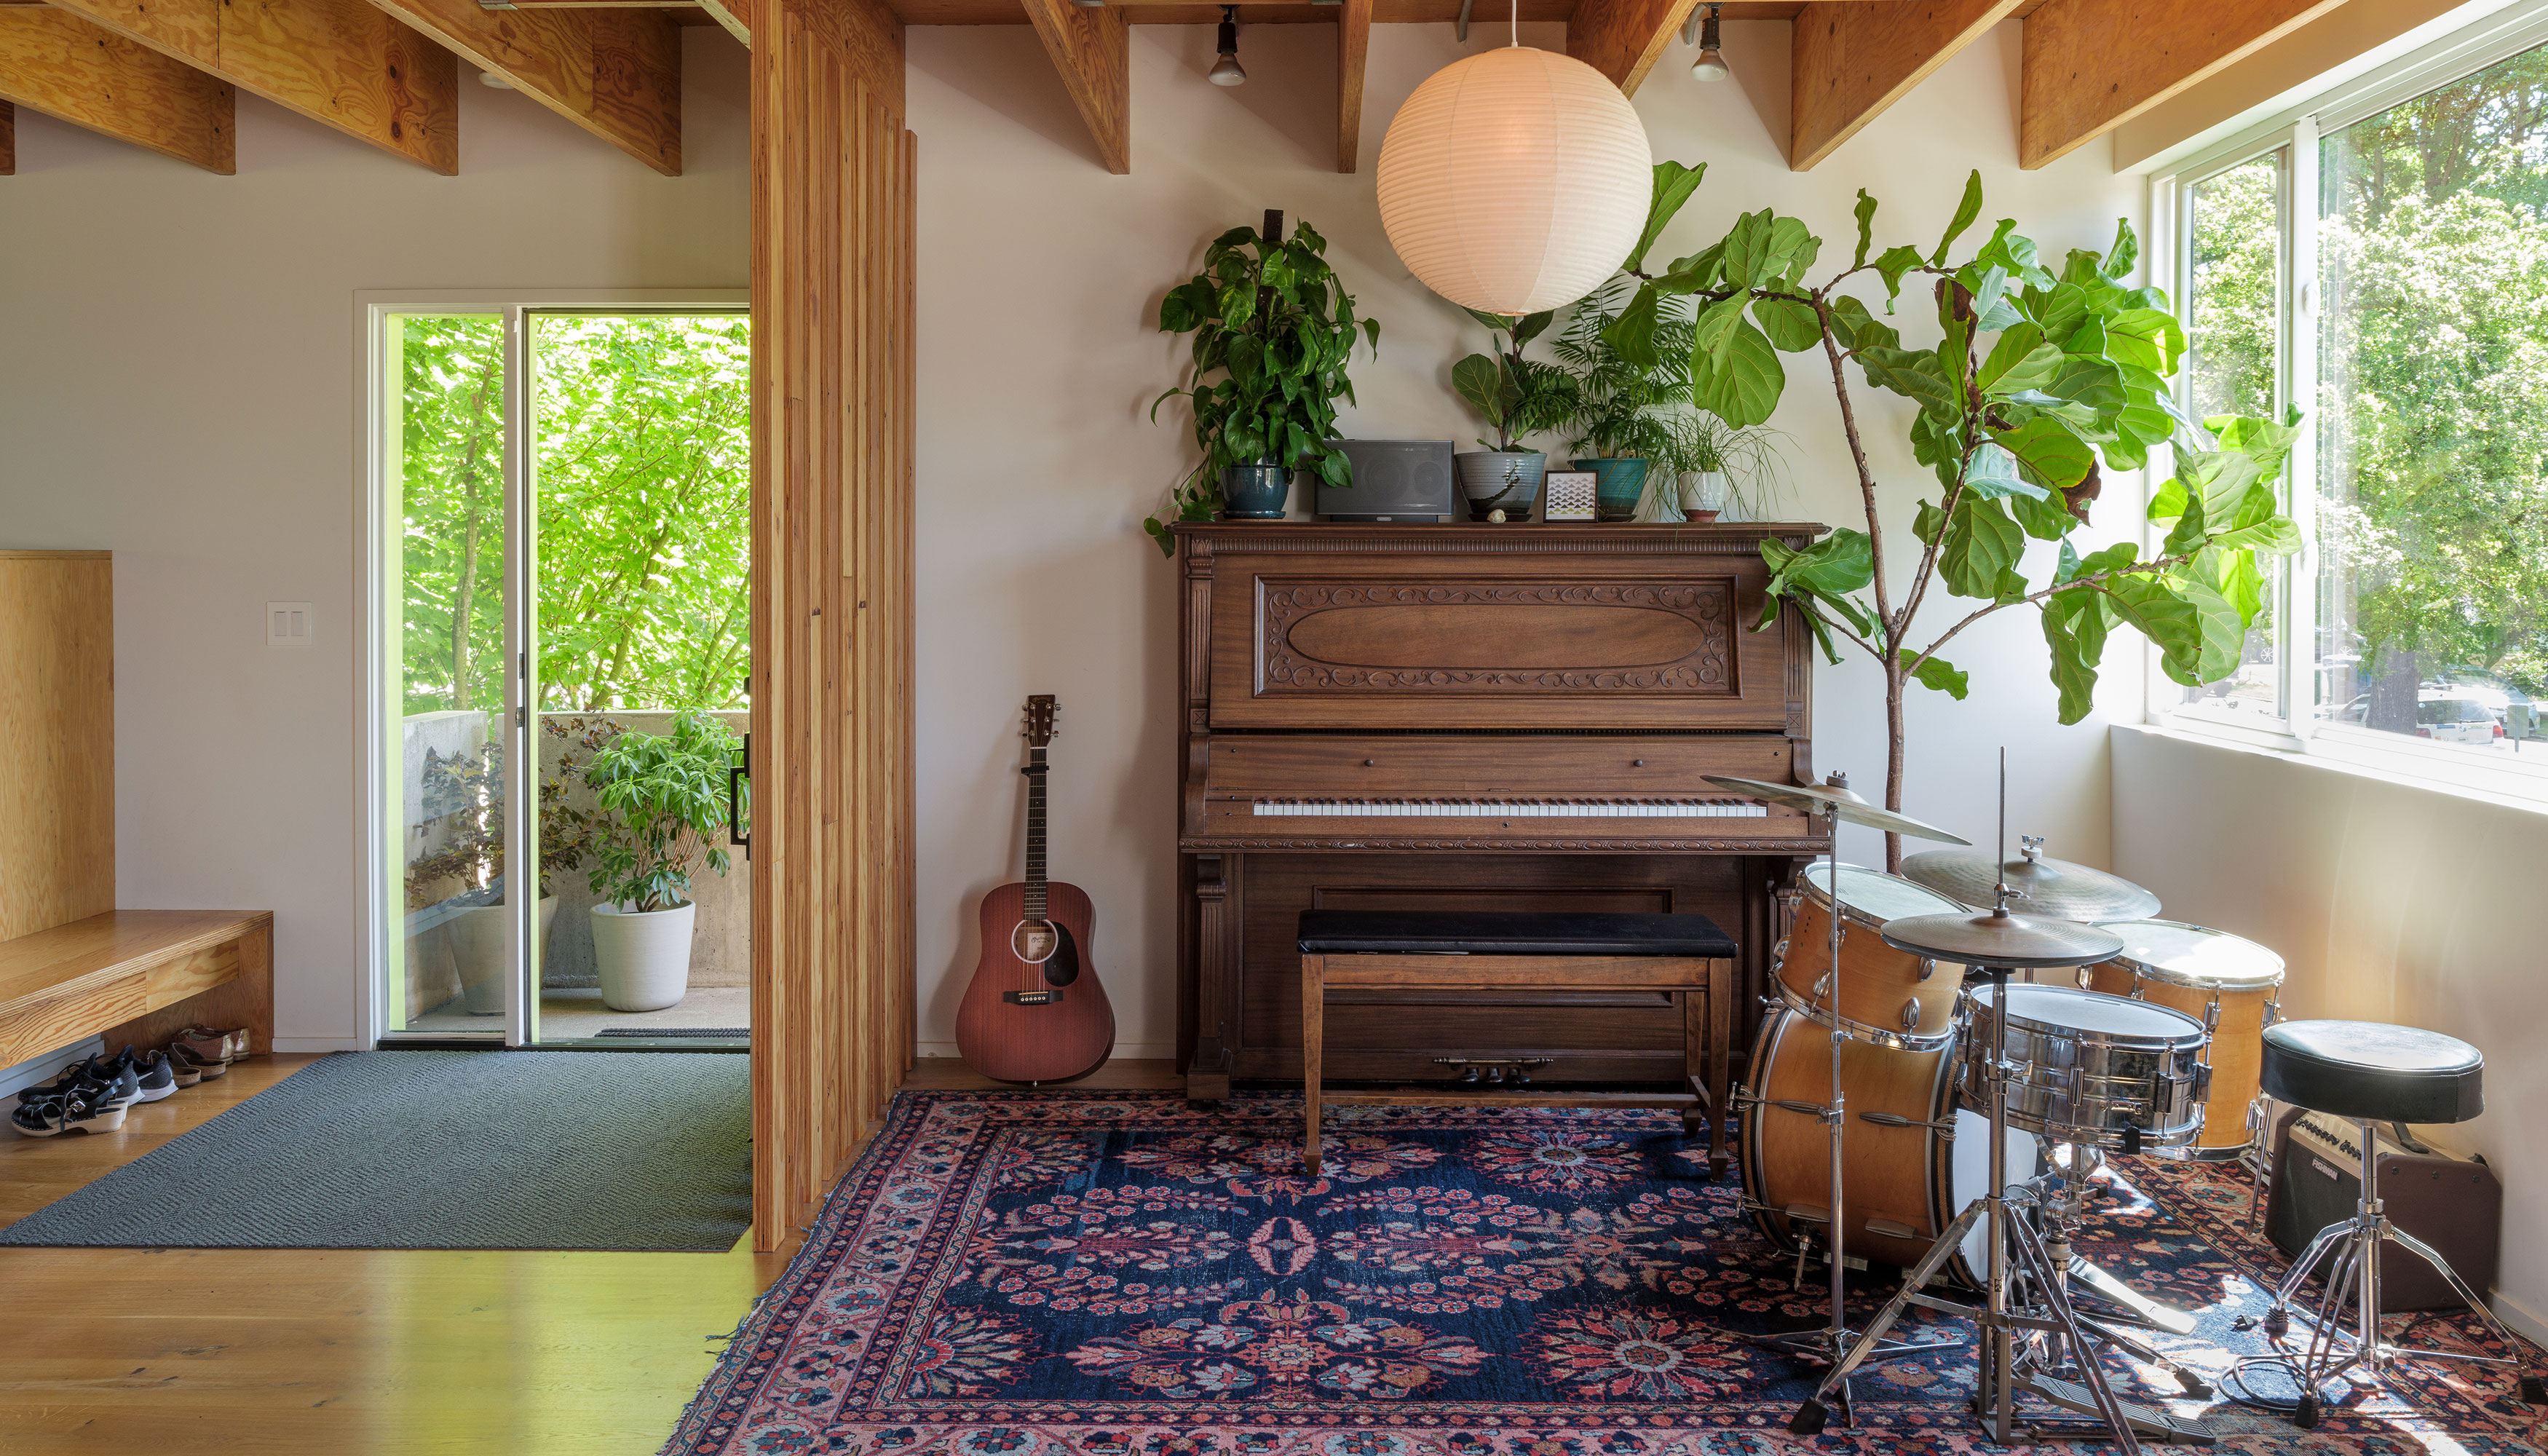 A living area with a wooden upright piano, guitar, patterned area rug, drum set, and light fixture. There are wooden beams on the ceiling and a wood room divider.